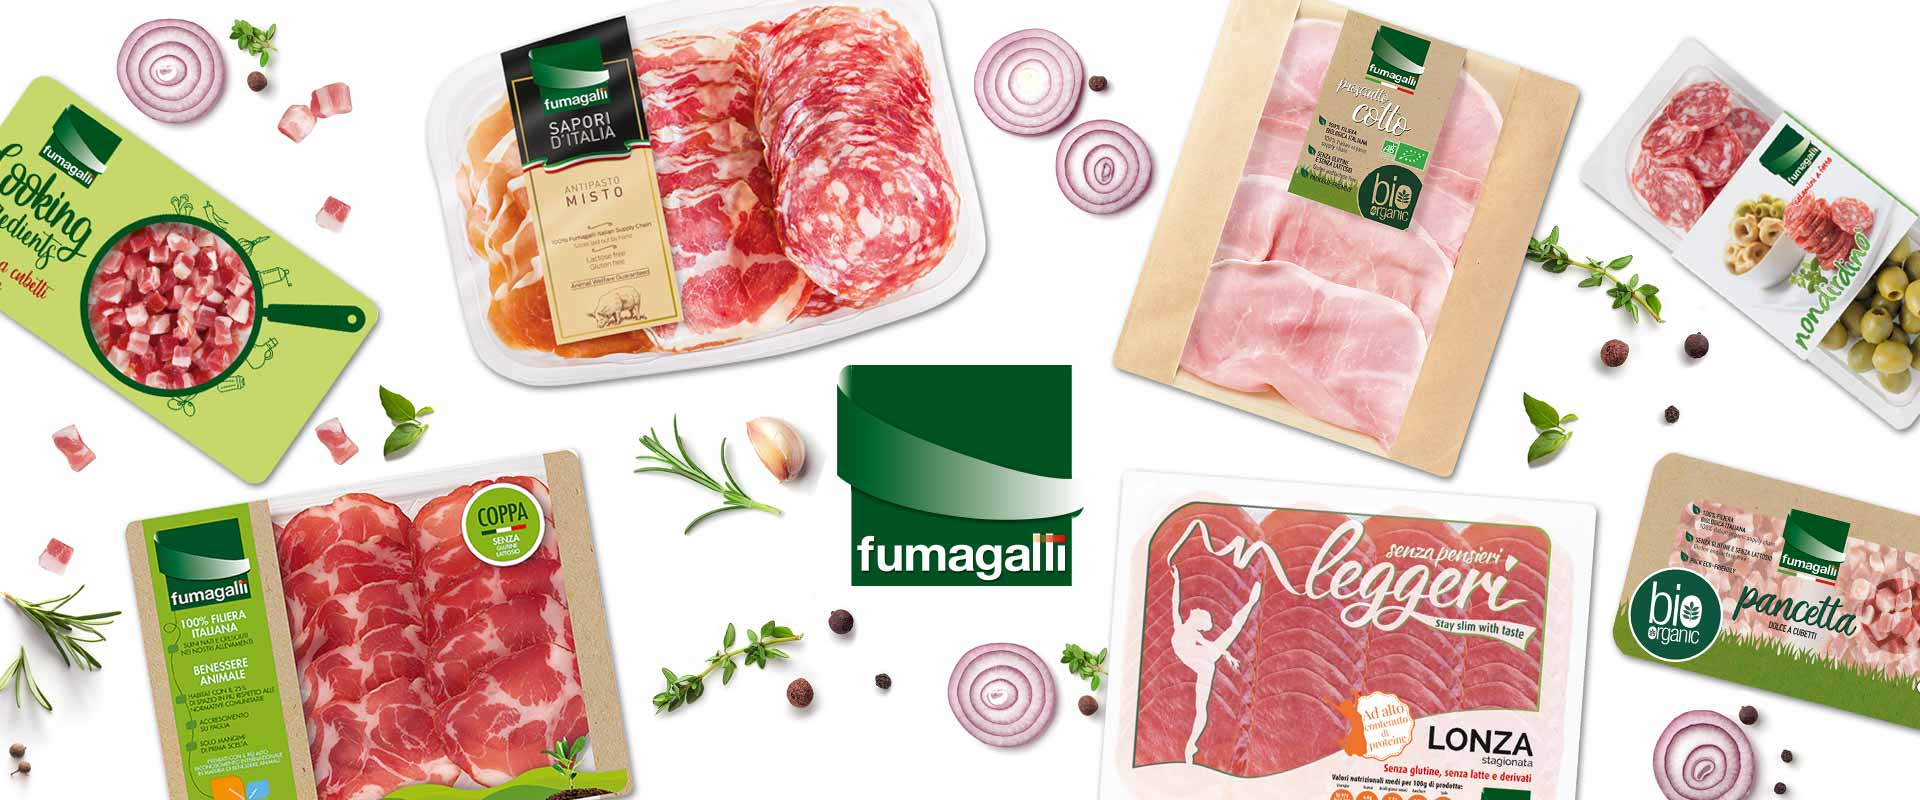 Packaging Fumagalli. Salumi differenti per ogni gusto.